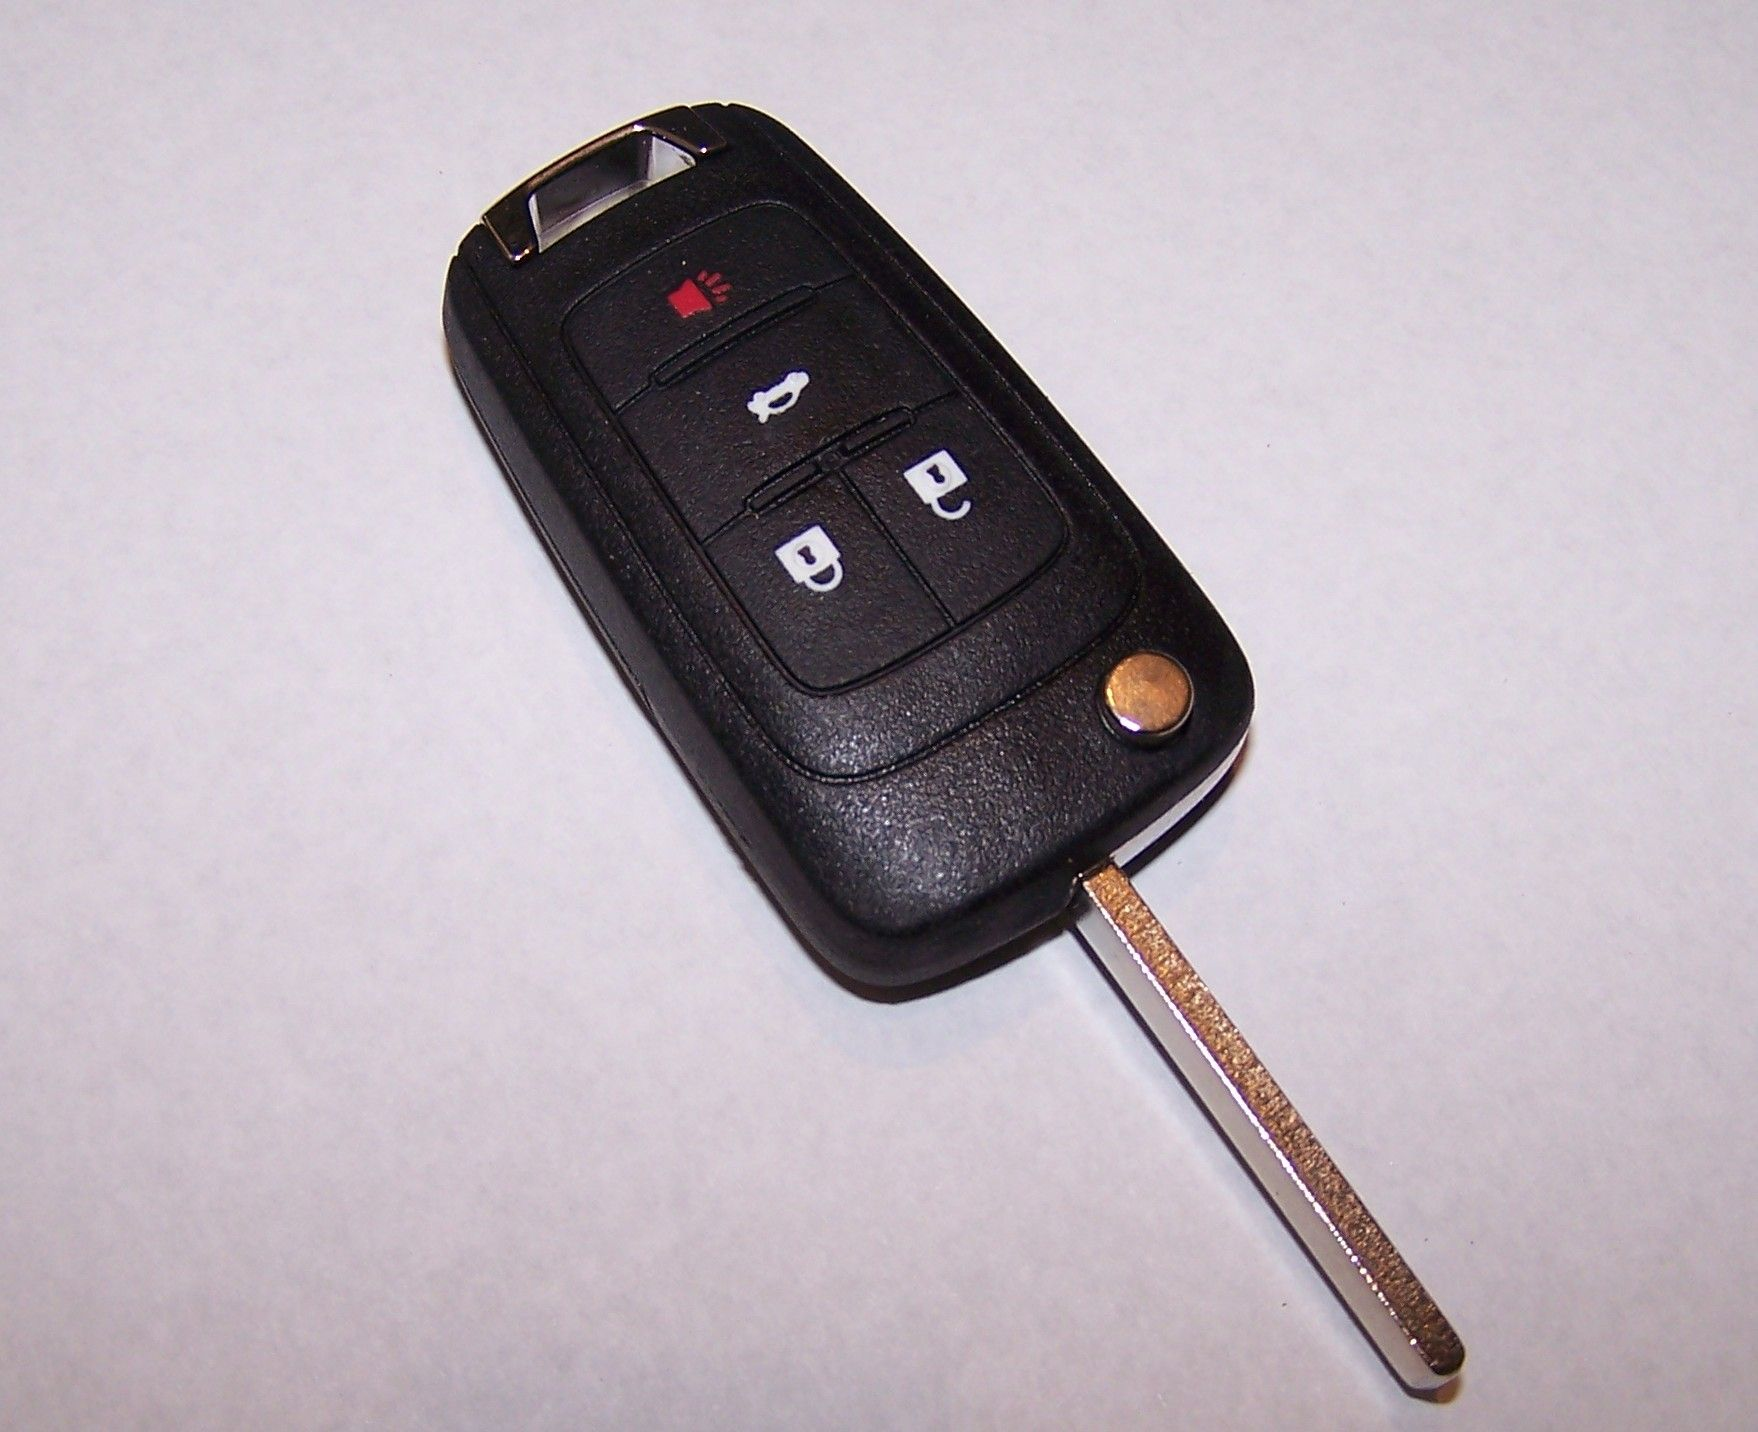 What Does It Mean To Key A Car